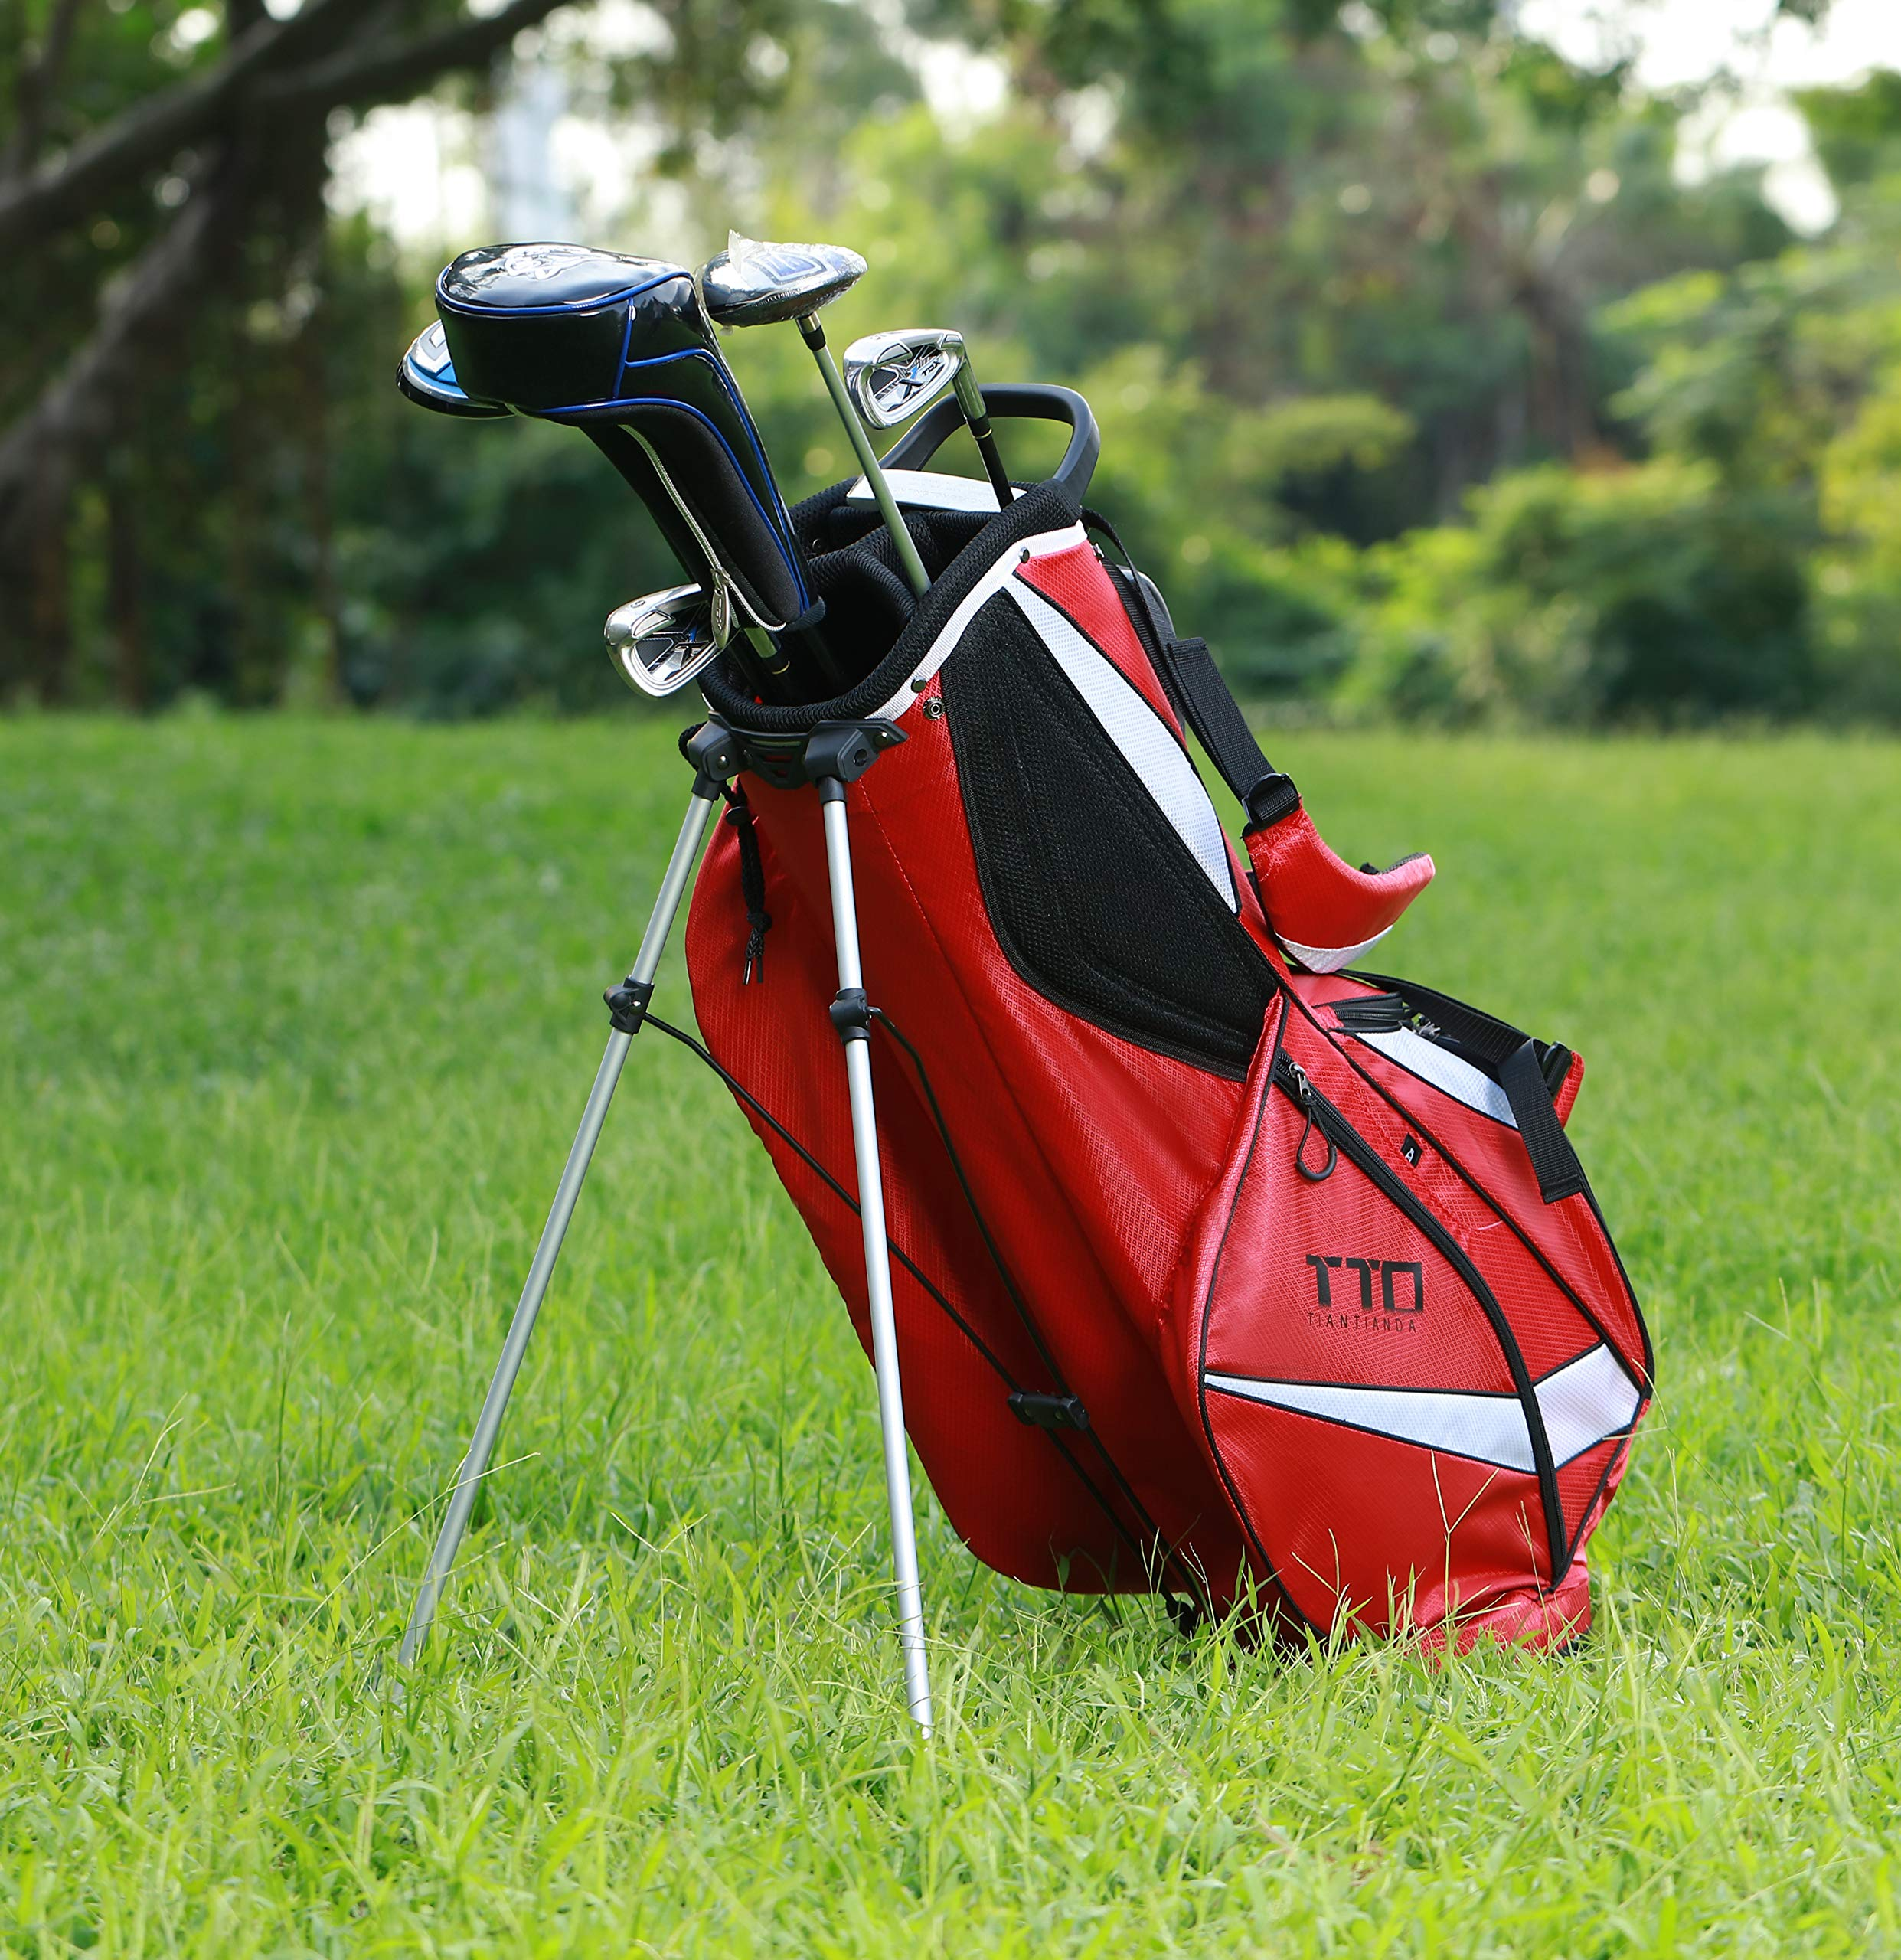 TTD TIANTIANDA Super Light Golf Stand Bag for Easy-Carry, Red